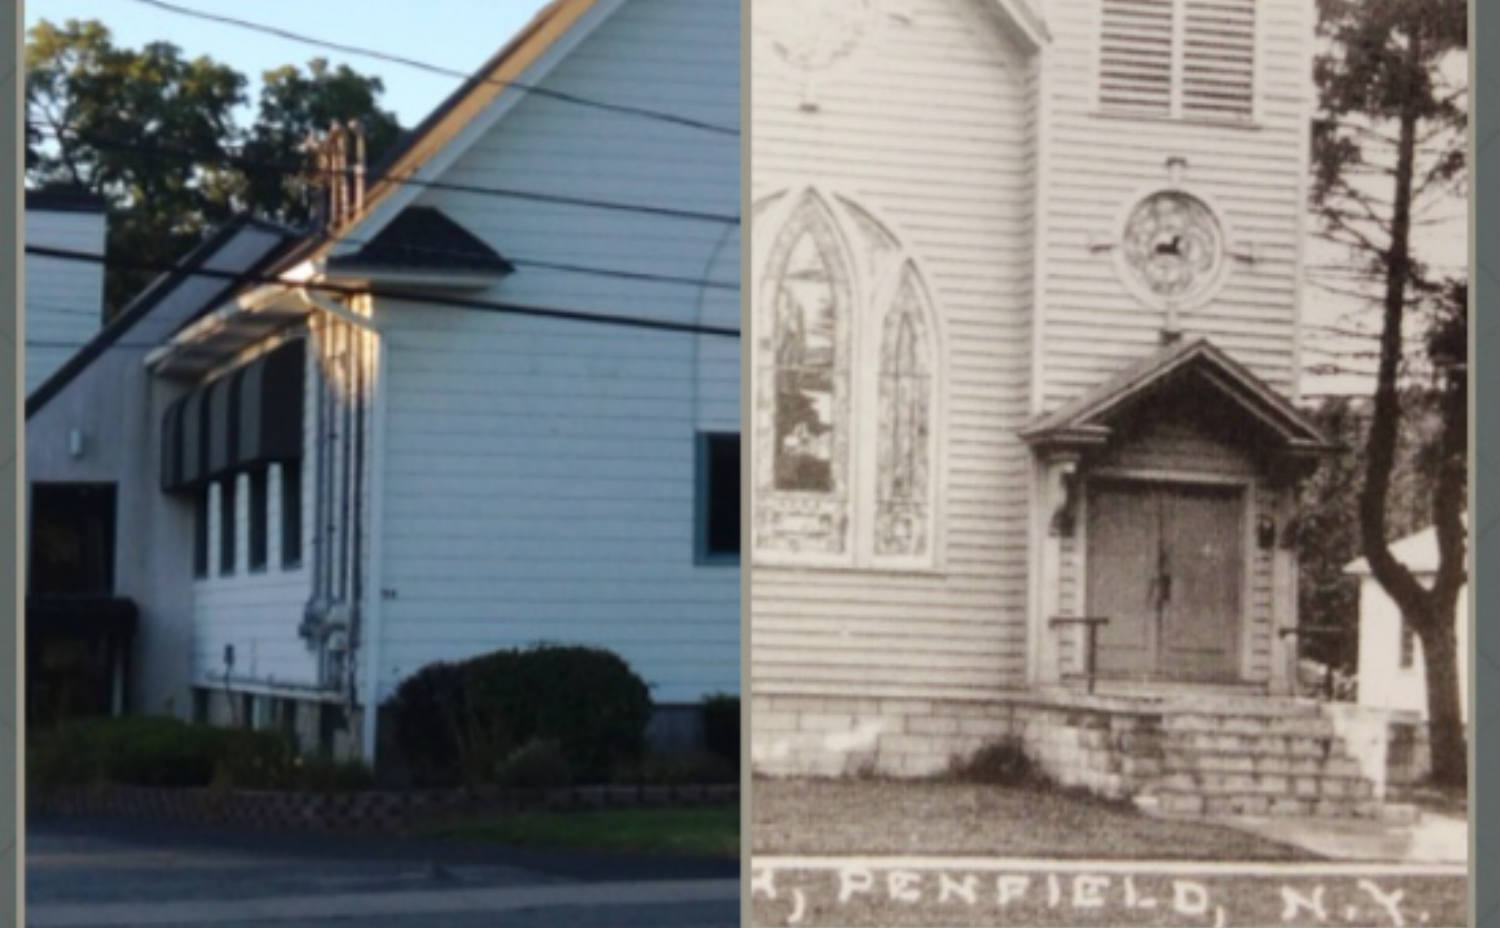 Then and Now: Advent Christian Church in Penfield, NY